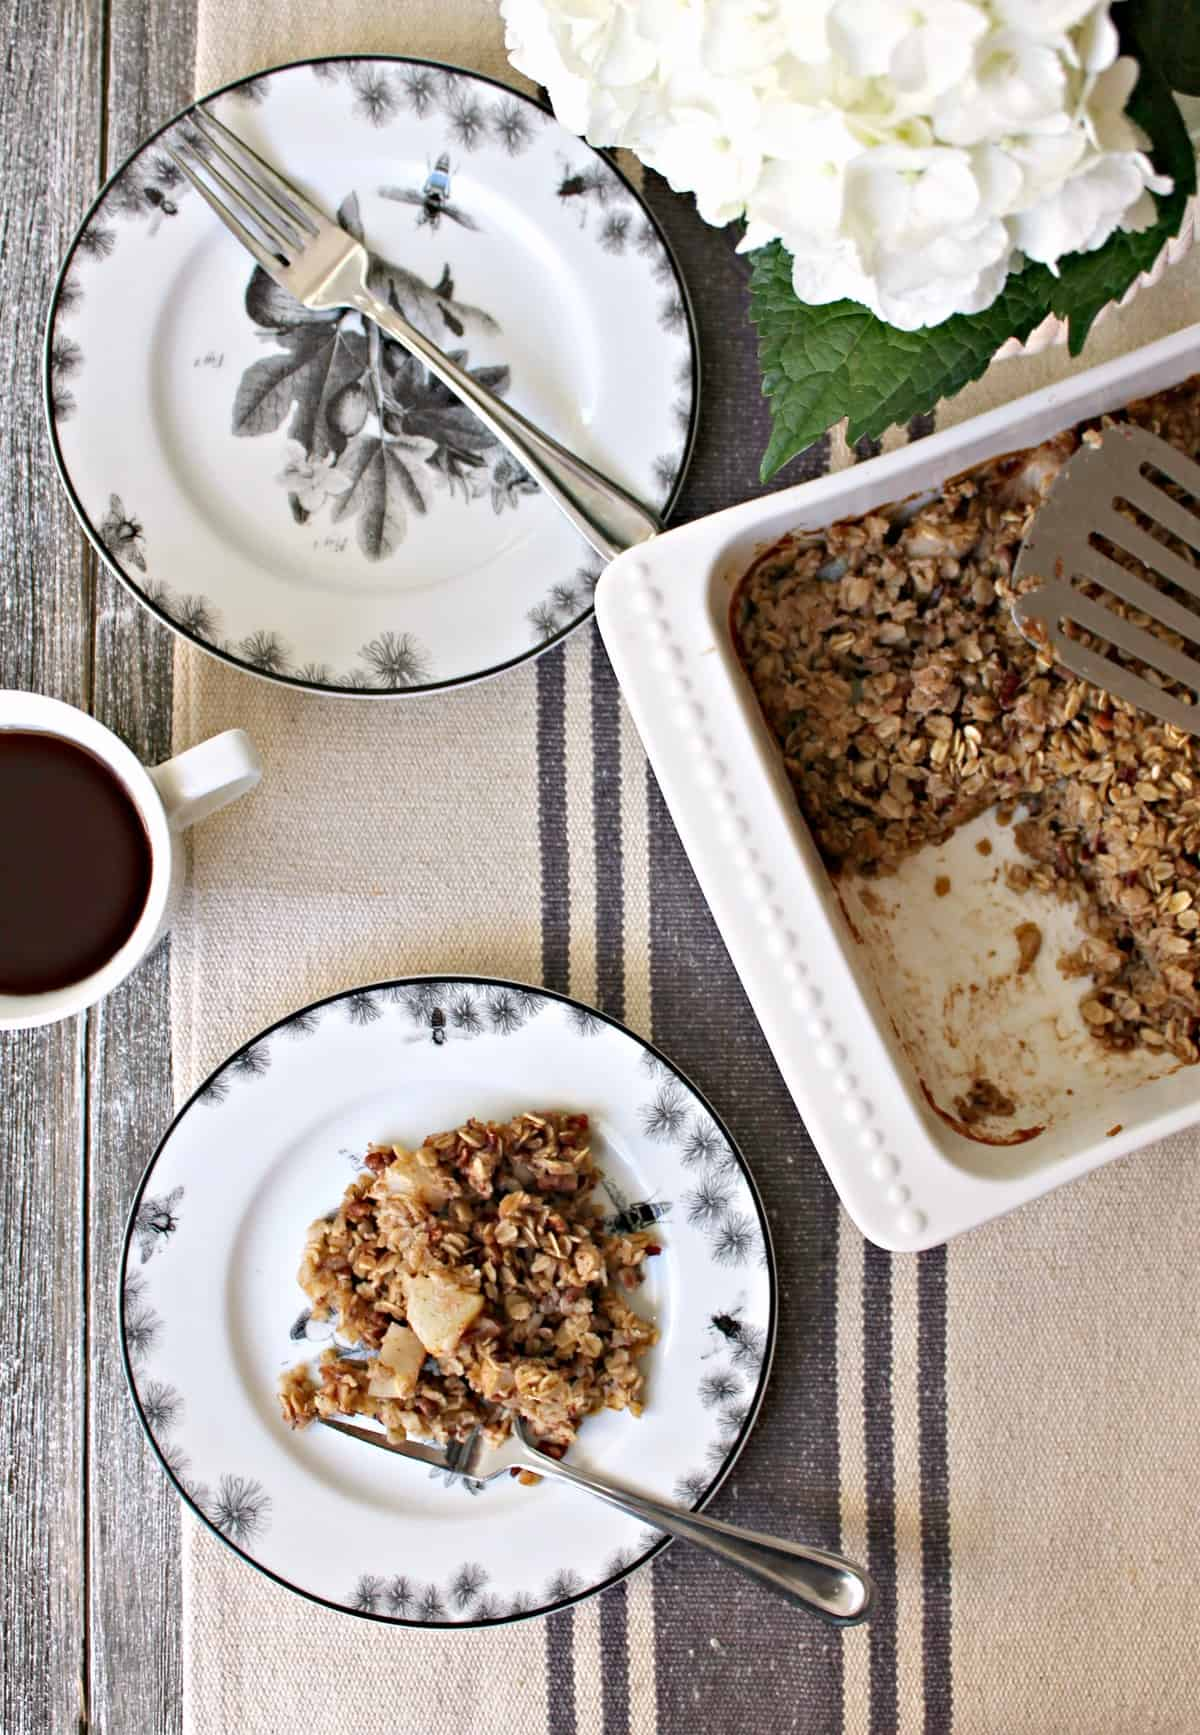 Spiced Pear Oatmeal Bake! Resolutions for starting the day on a more nutritious note will be easy to keep with this healthy baked oatmeal recipe. Made with hearty oats, juicy pears and warming spices, this easy, make-ahead breakfast will be one you look forward to daily!